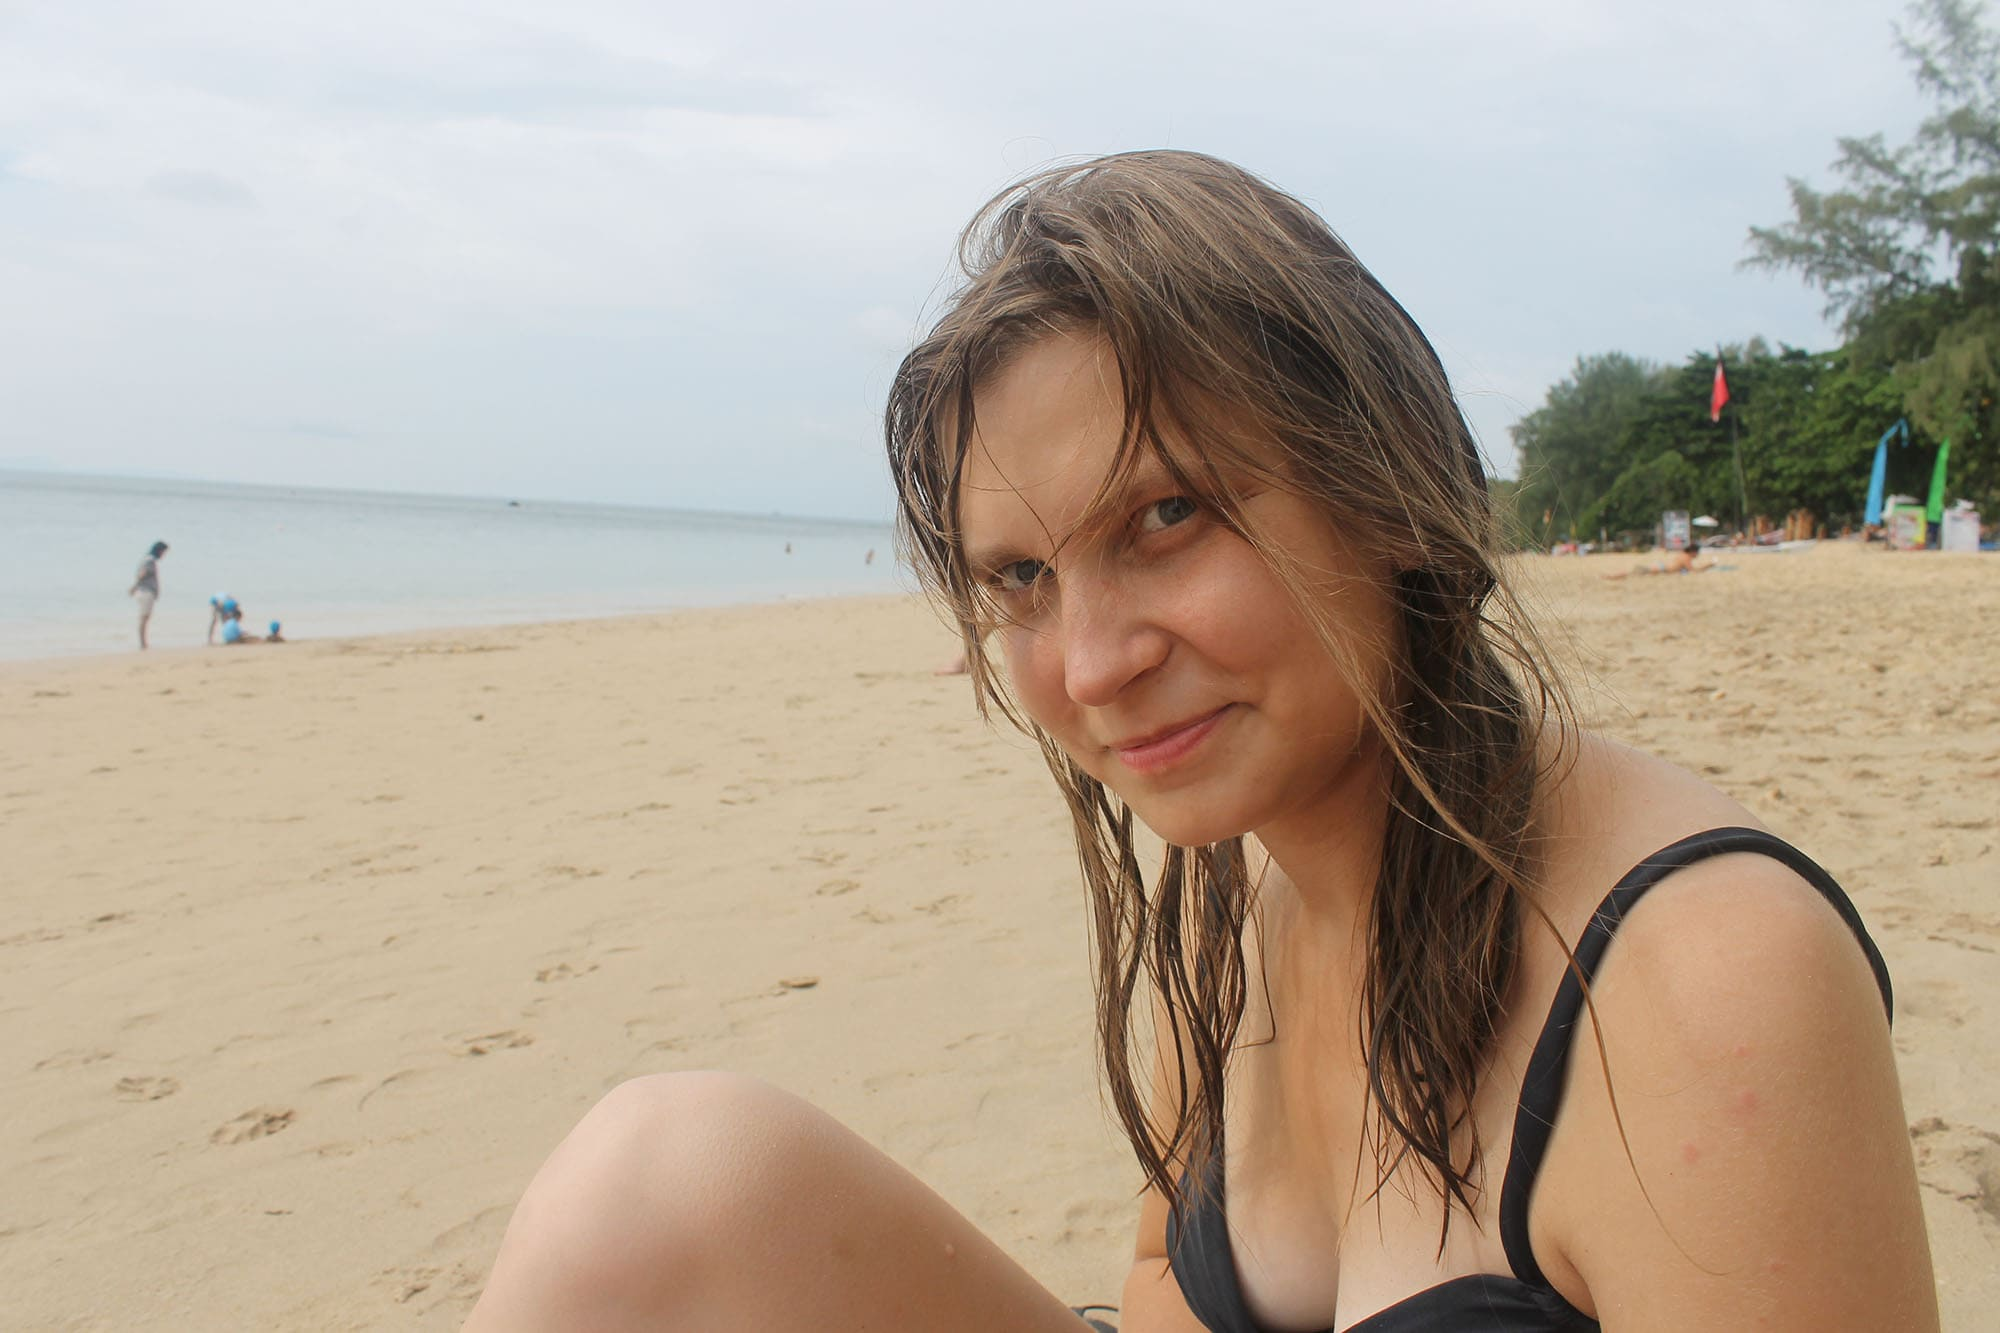 Relaxing on the beach in Koh Lanta, Thailand